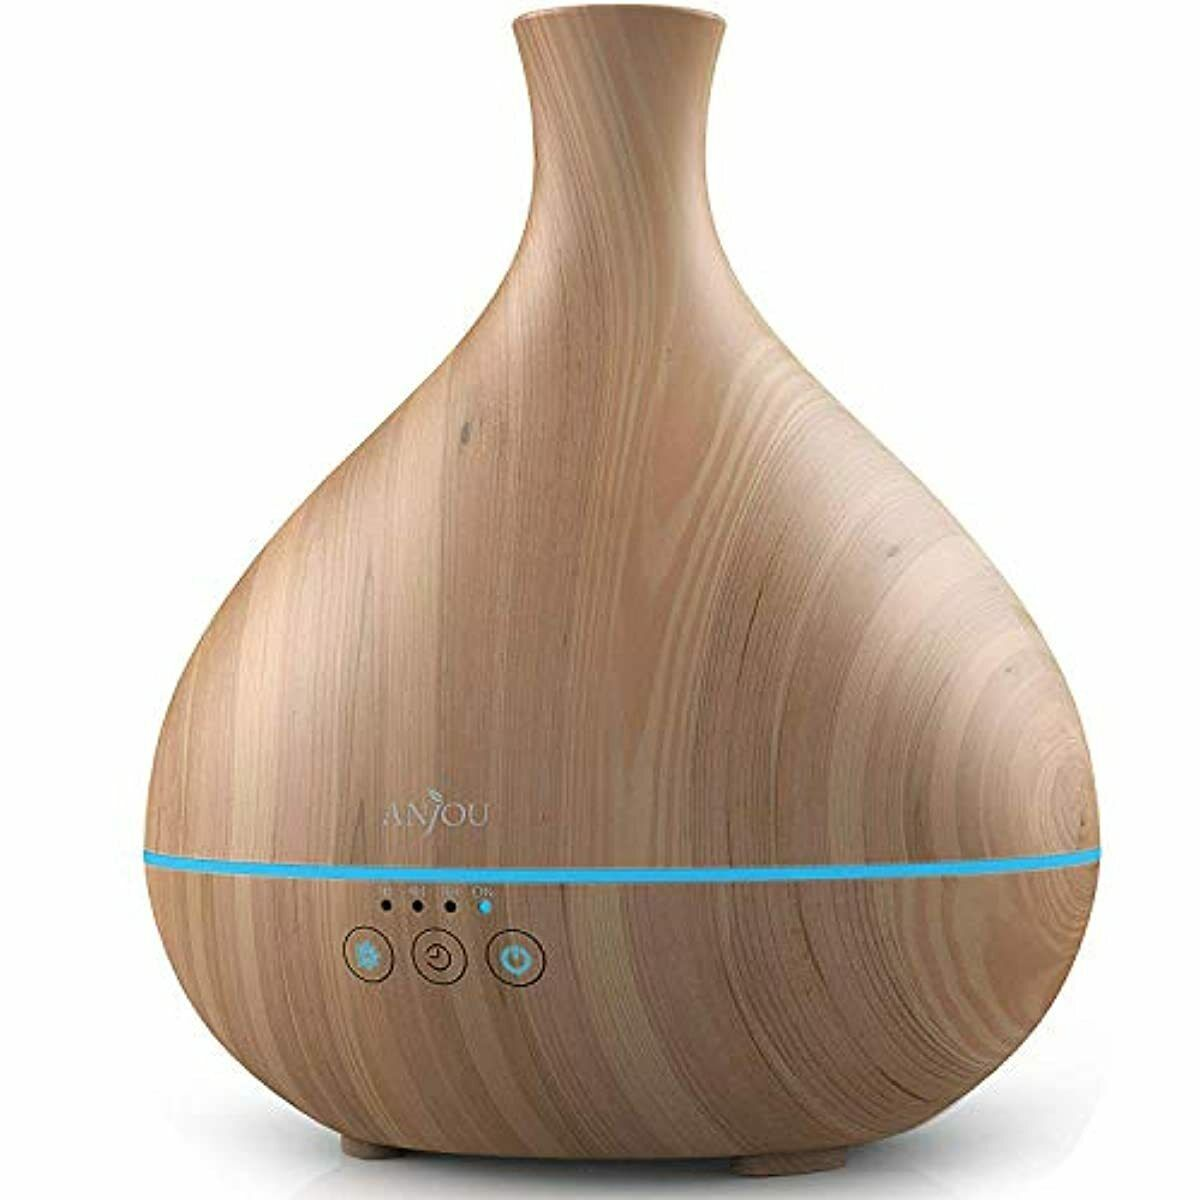 Essential Oil Diffuser, Anjou 500ml Cool Mist Humidifier W..